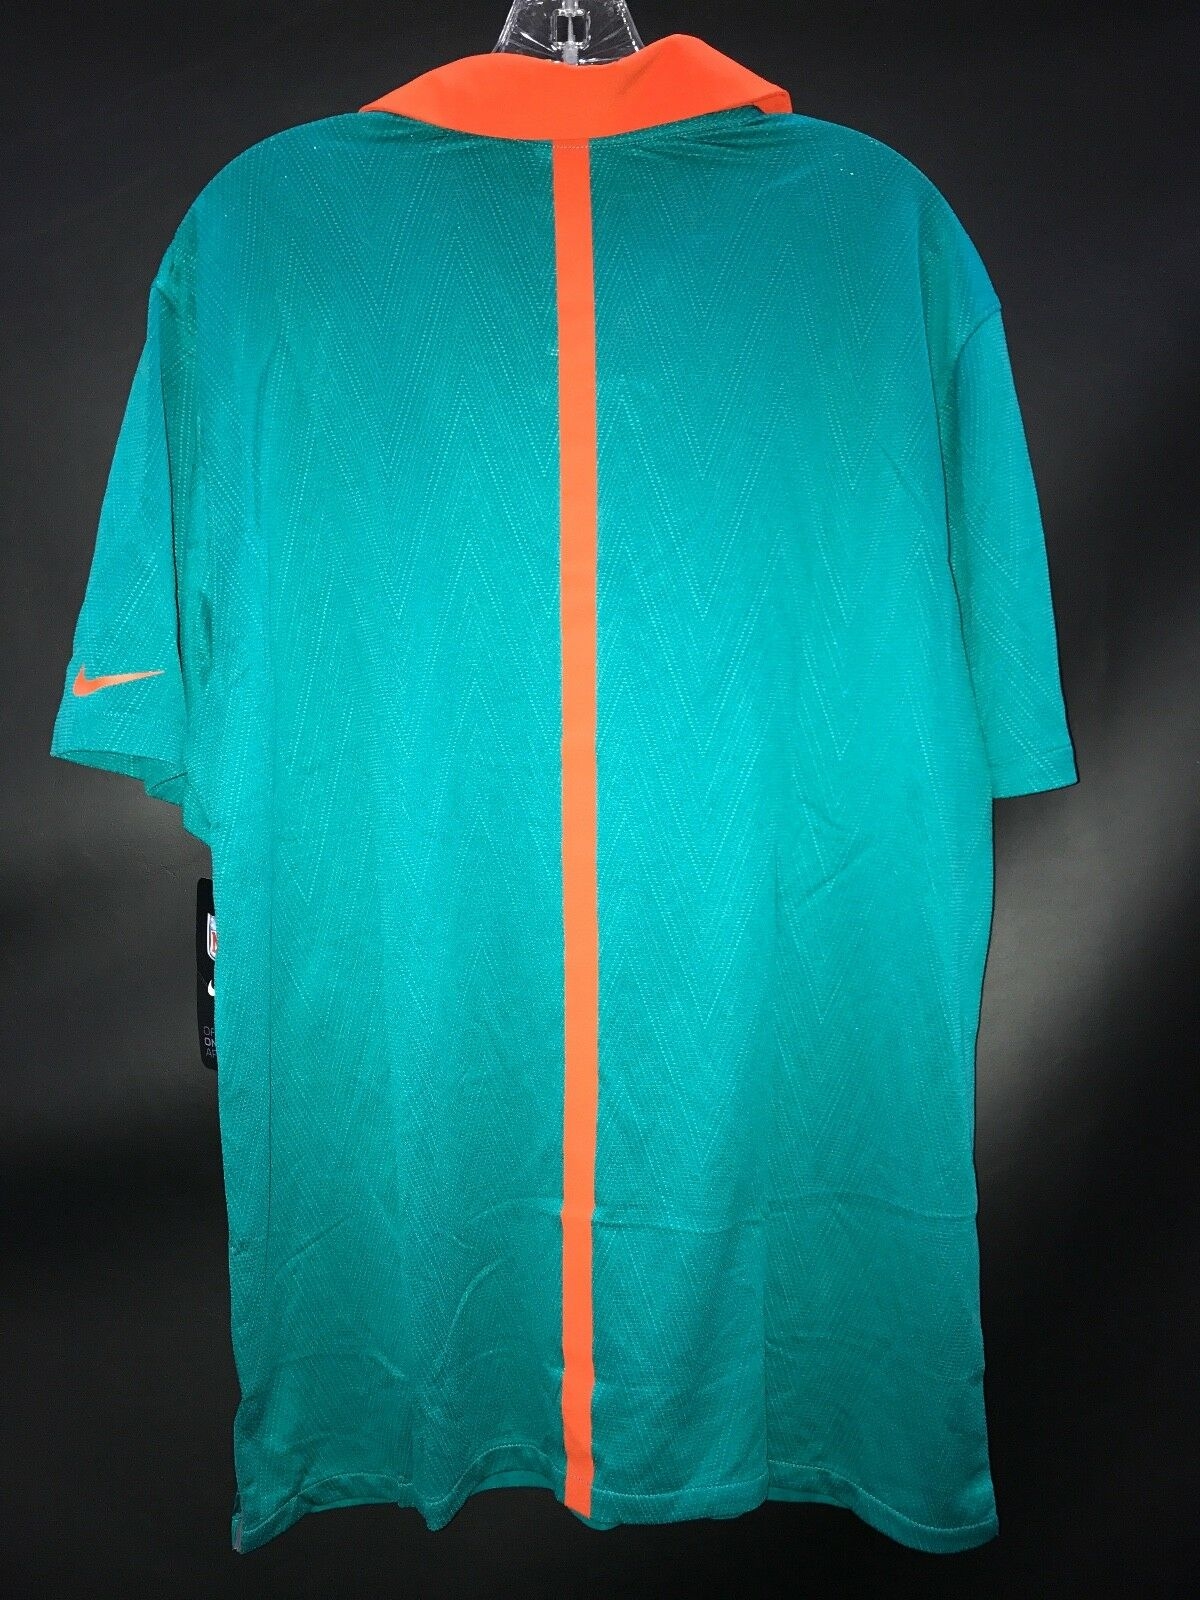 7d699119e26 MIAMI DOLPHINS TEAM ISSUED COACHES THROWBACK POLO SHIRT BRAND NEW OLD LOGO  RARE